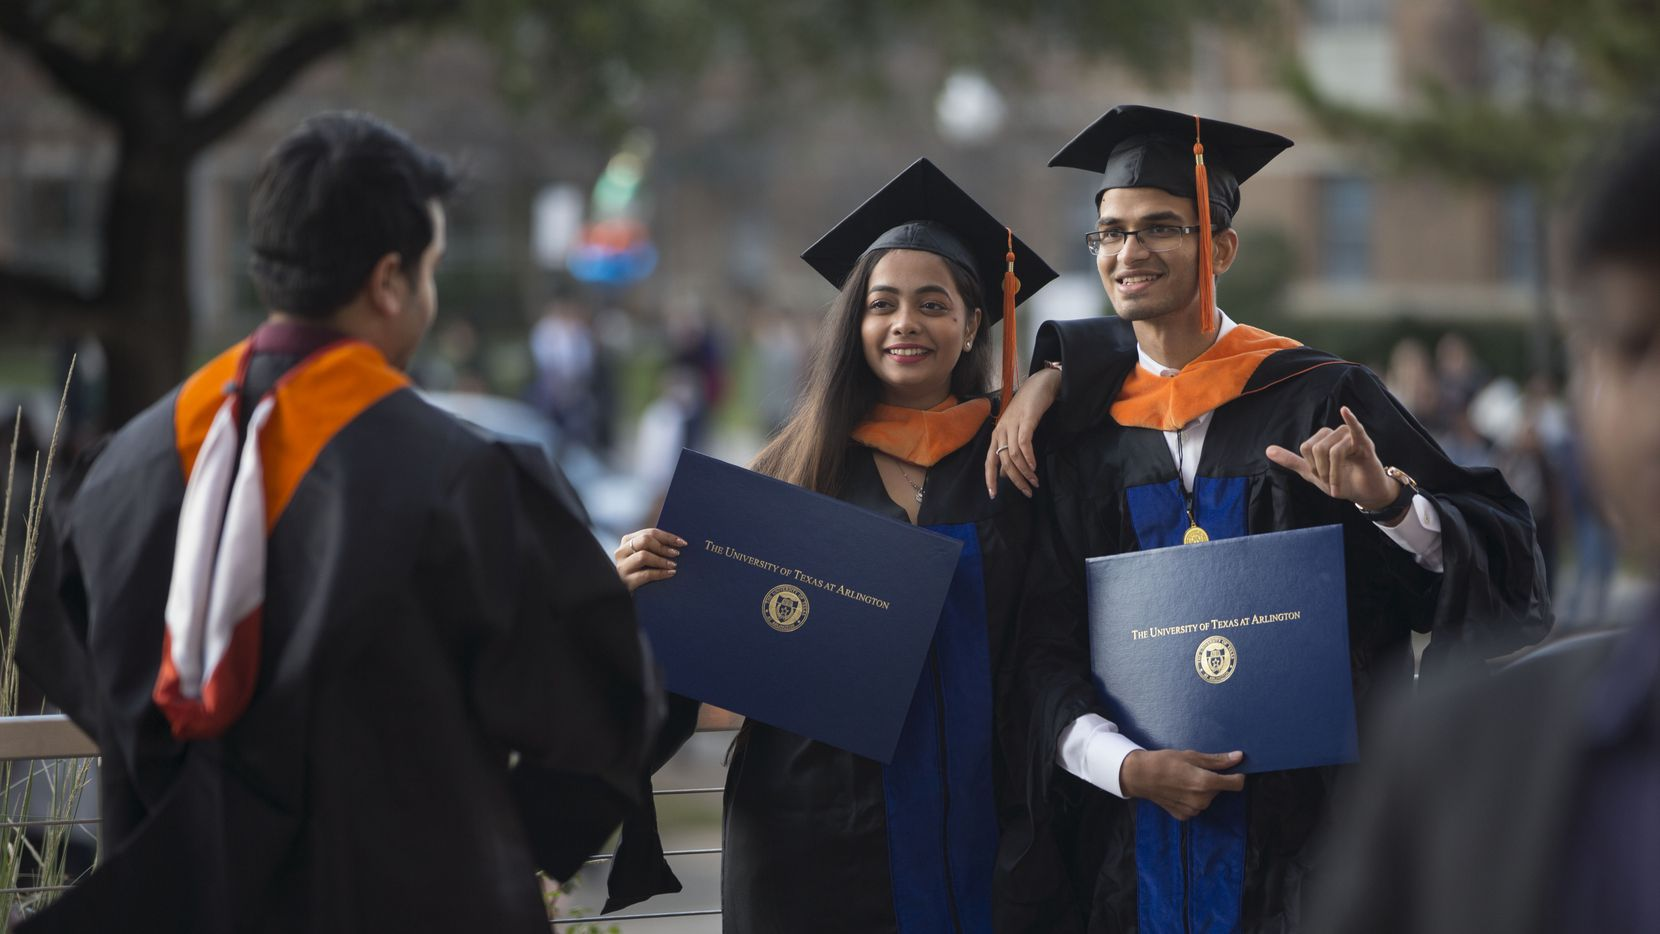 Mrunmayee Kale of India, middle, and Avinash Gayam of India pose for a picture after graduation ceremonies at the University of Texas at Arlington in December 2018. At UTA, international students play a big role in research and discoveries, the provost said. (Daniel Carde/The Dallas Morning News)